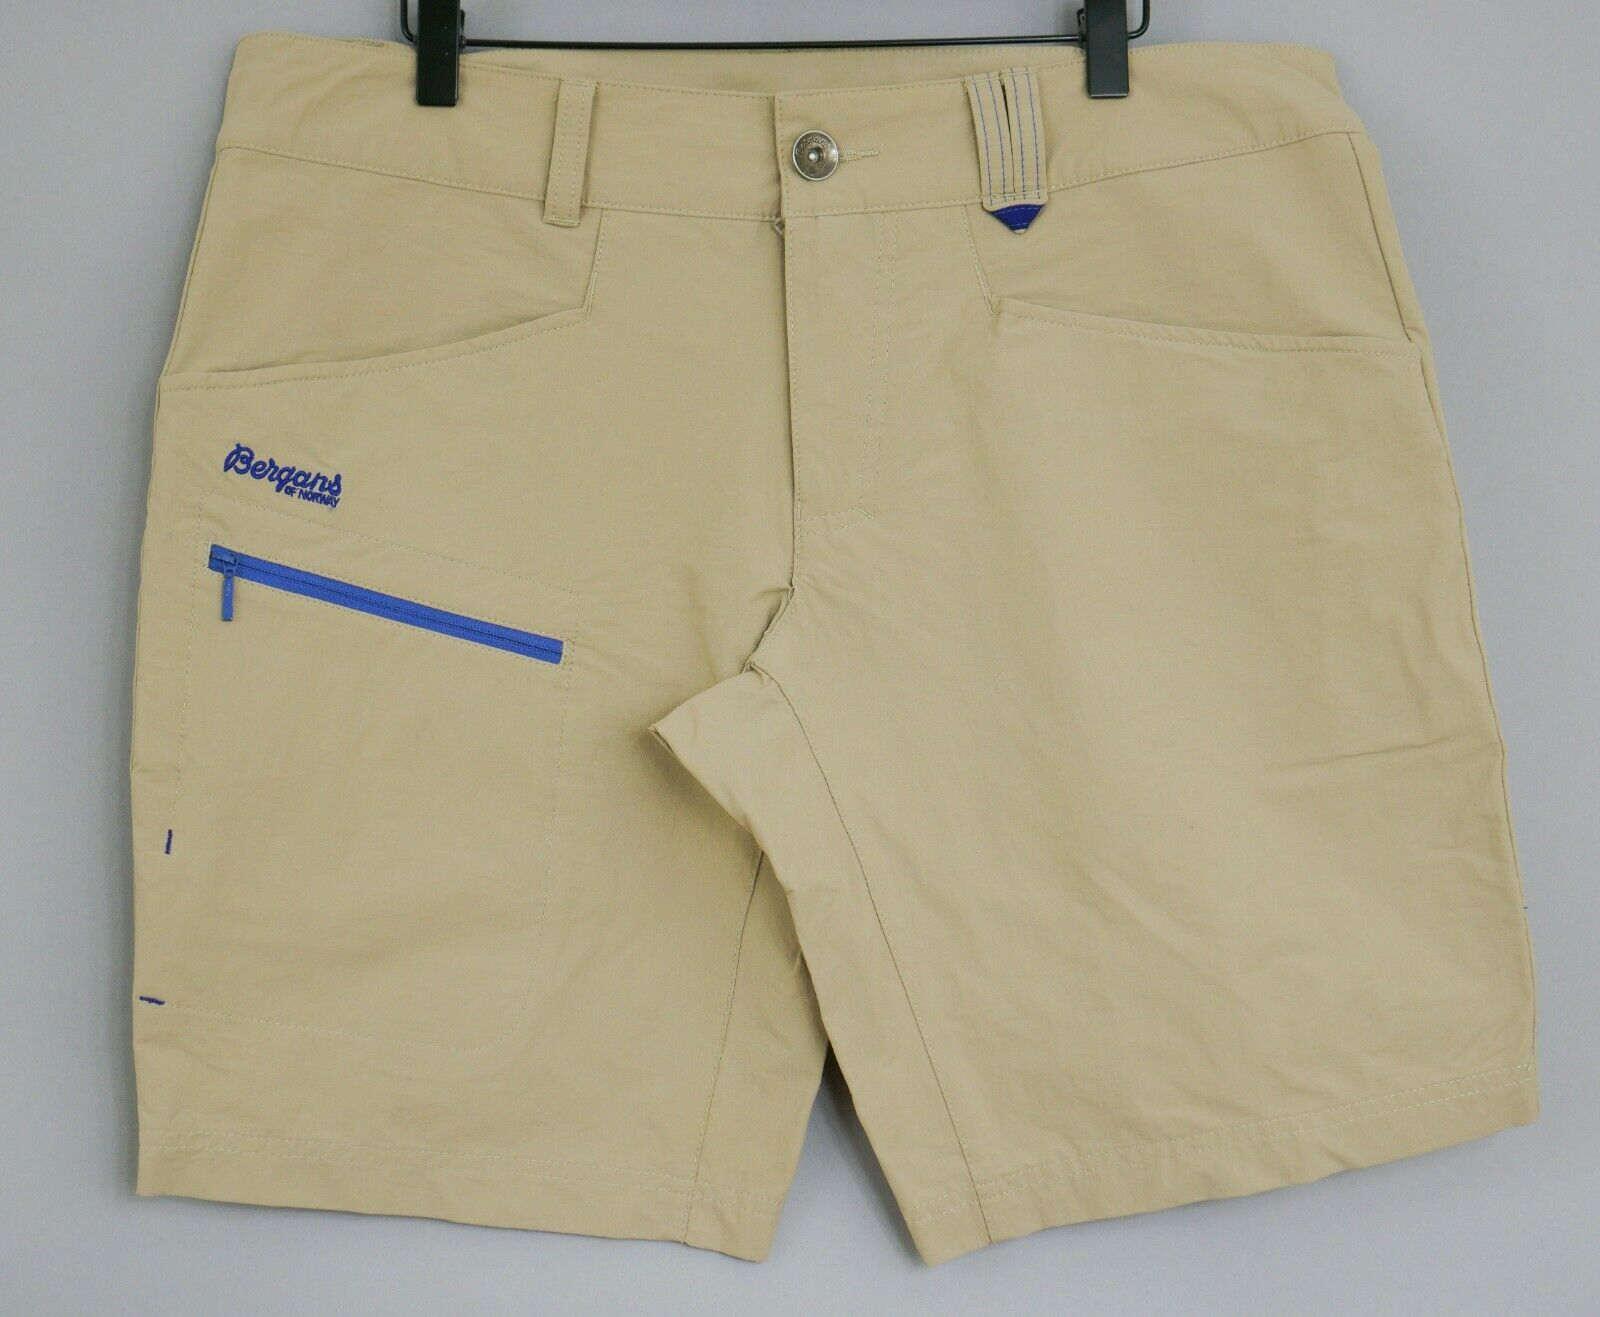 282a9840d Details about Women Bergans Of Norway Shorts 7179 Utne Lady Beige Hiking  Camping L W36 VBA655